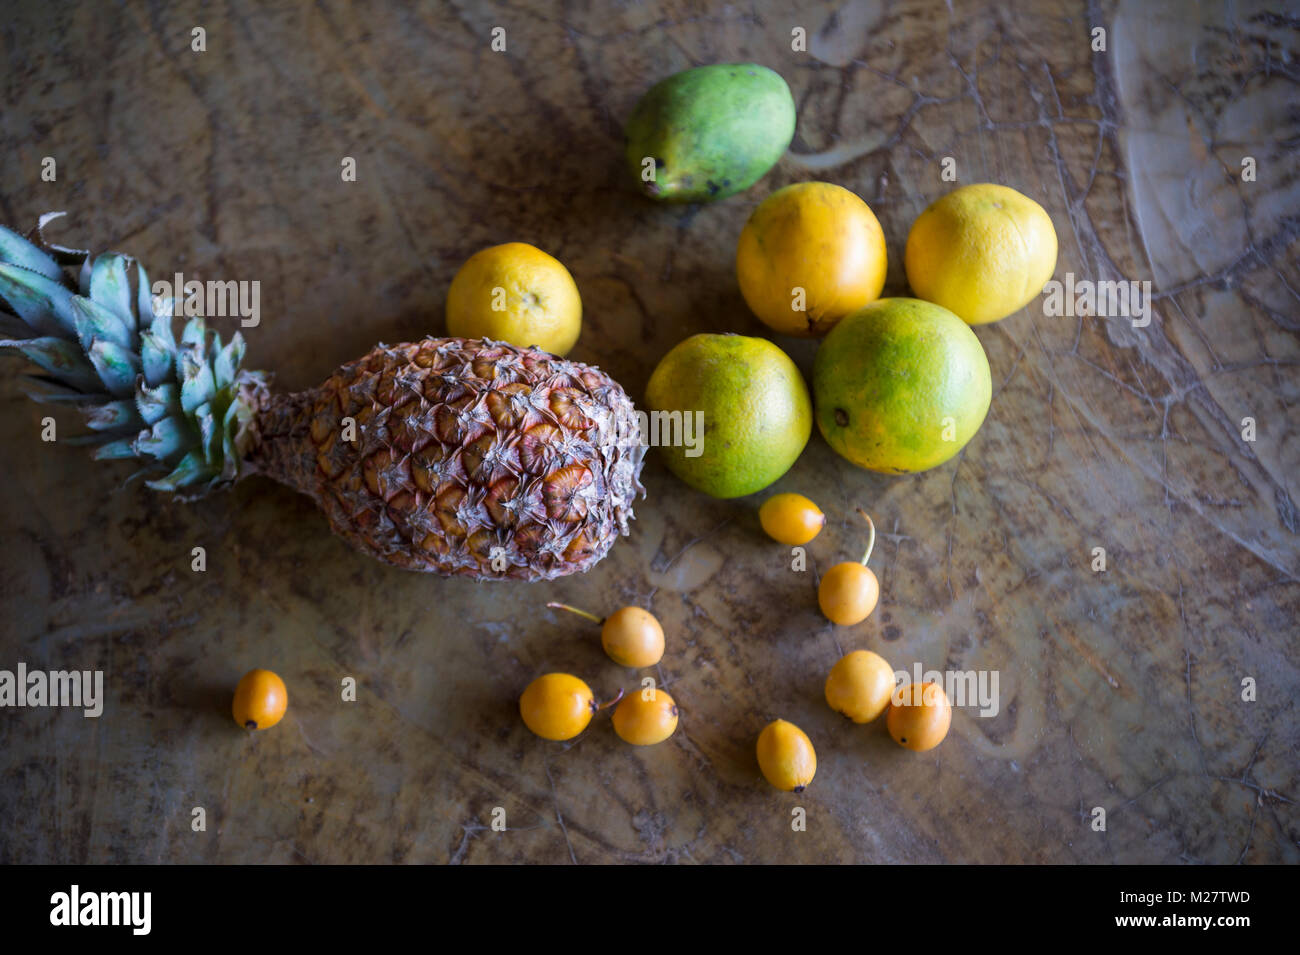 Still life of fresh tropical Brazilian fruits from the farmers market including pineapple, mango, and other local - Stock Image